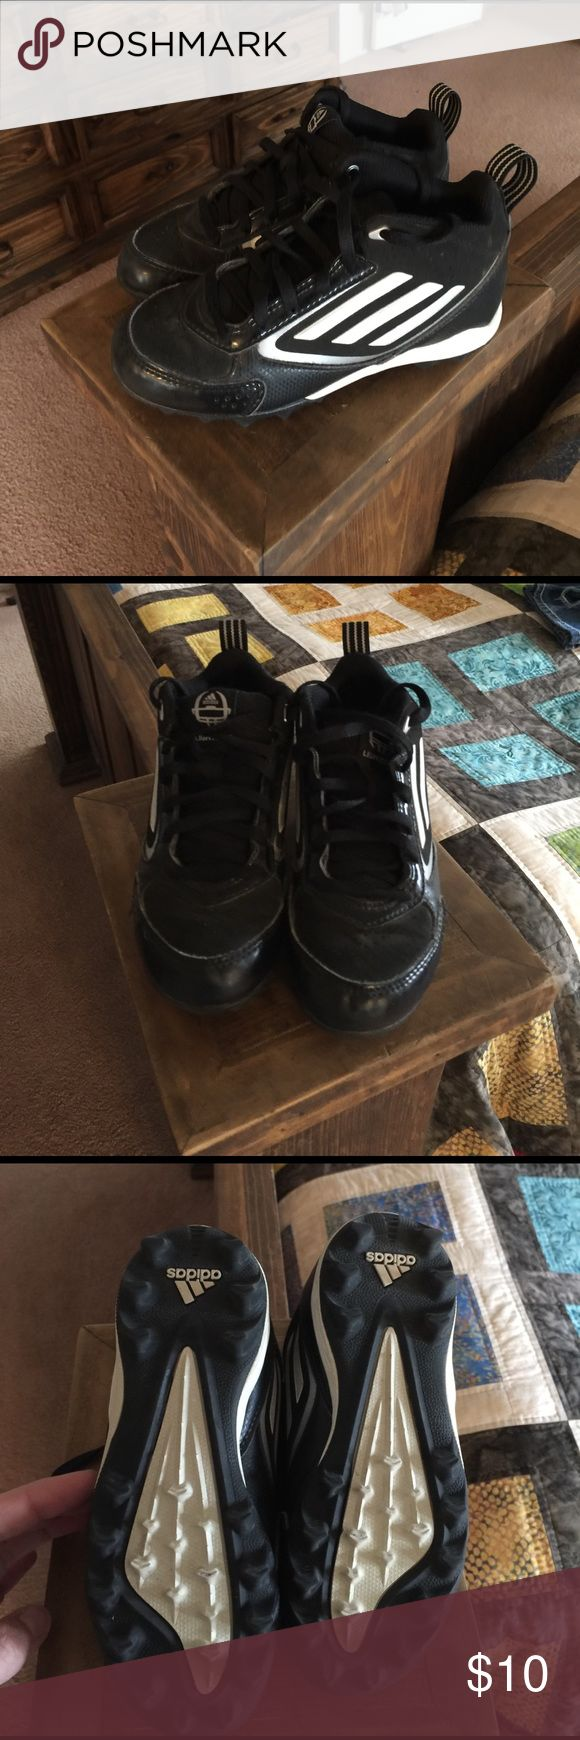 Boys football cleats Adidas boys football cleats. In great condition only used to play flag football for 2 years. Kiddo just out grew them. The cleats still look really good. Could also be used as baseball cleats. Lots of miles left on these. Adidas Shoes Sneakers